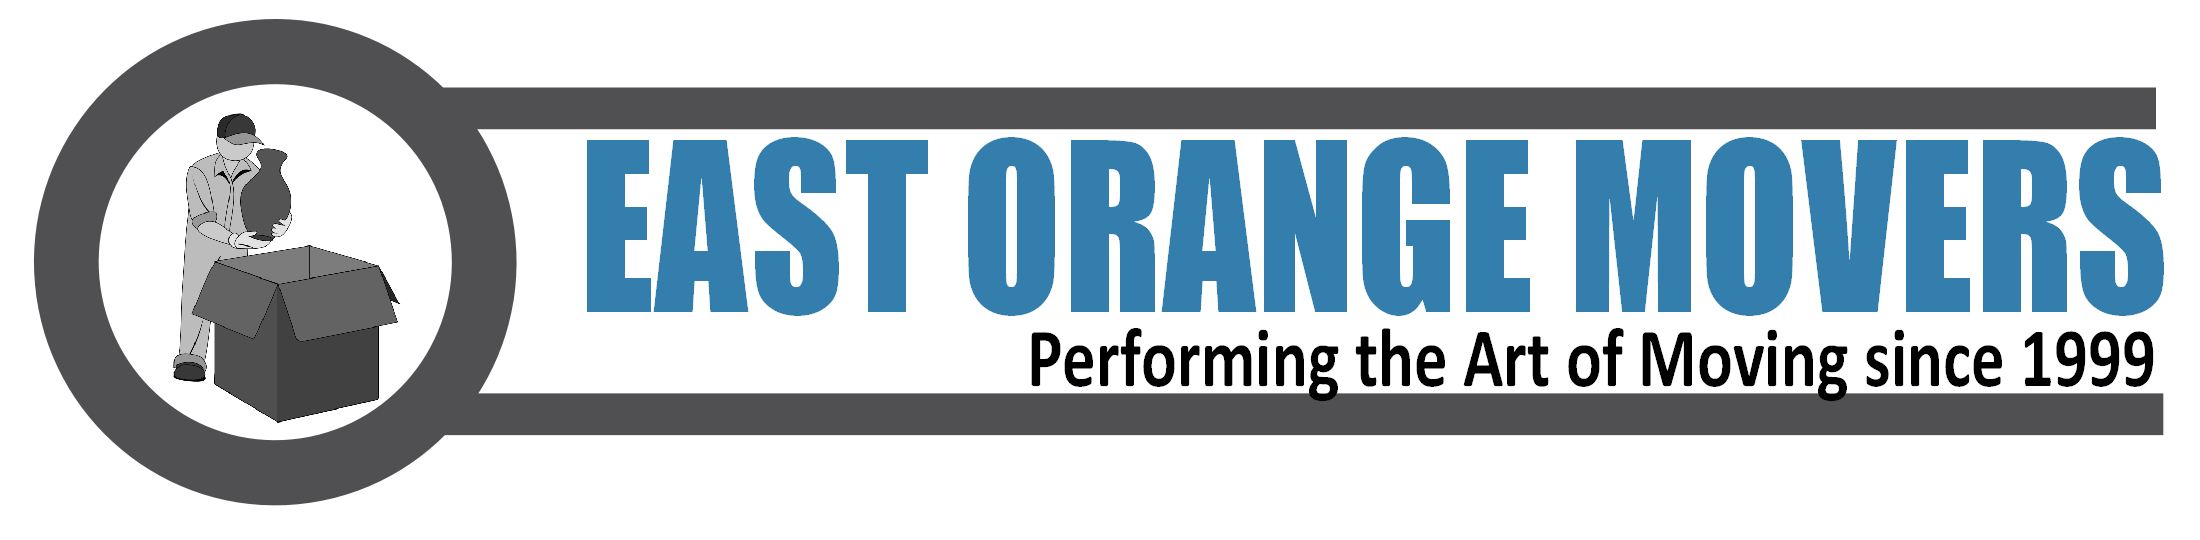 East Orange Movers Logo